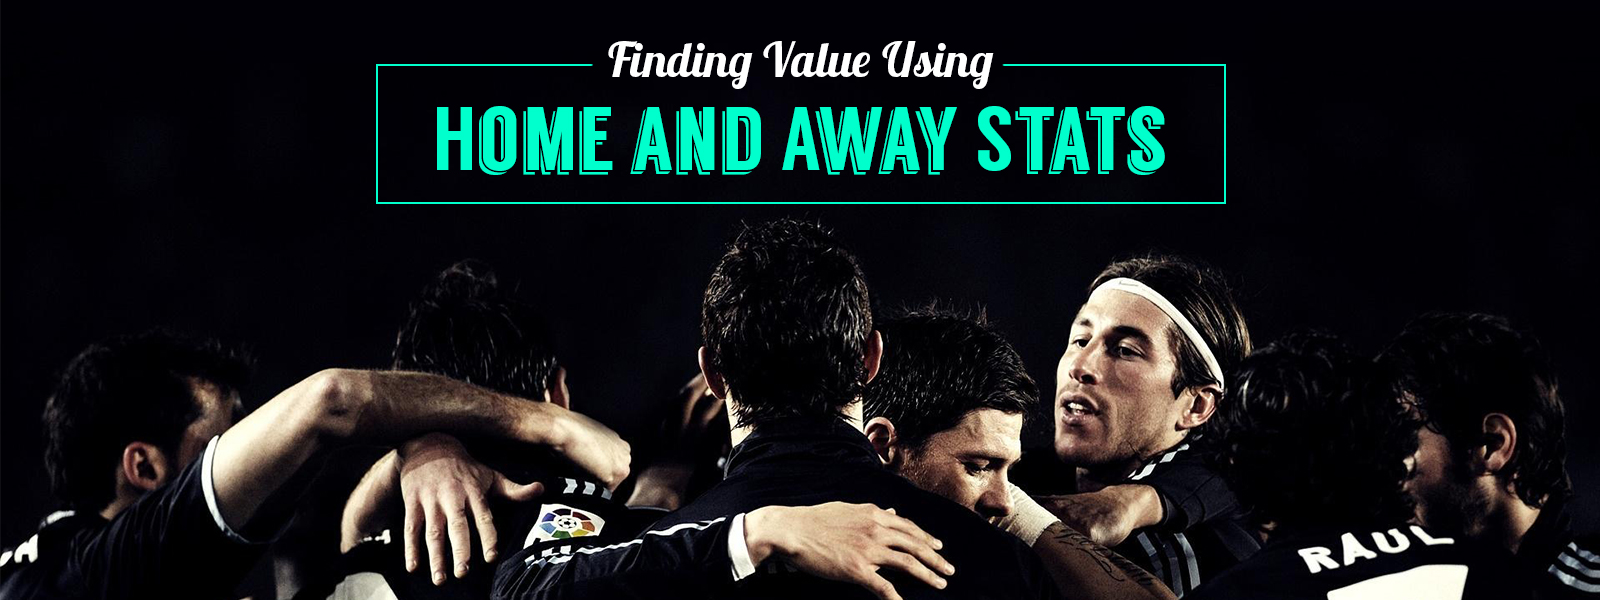 Finding Value Using Home and Away Stats